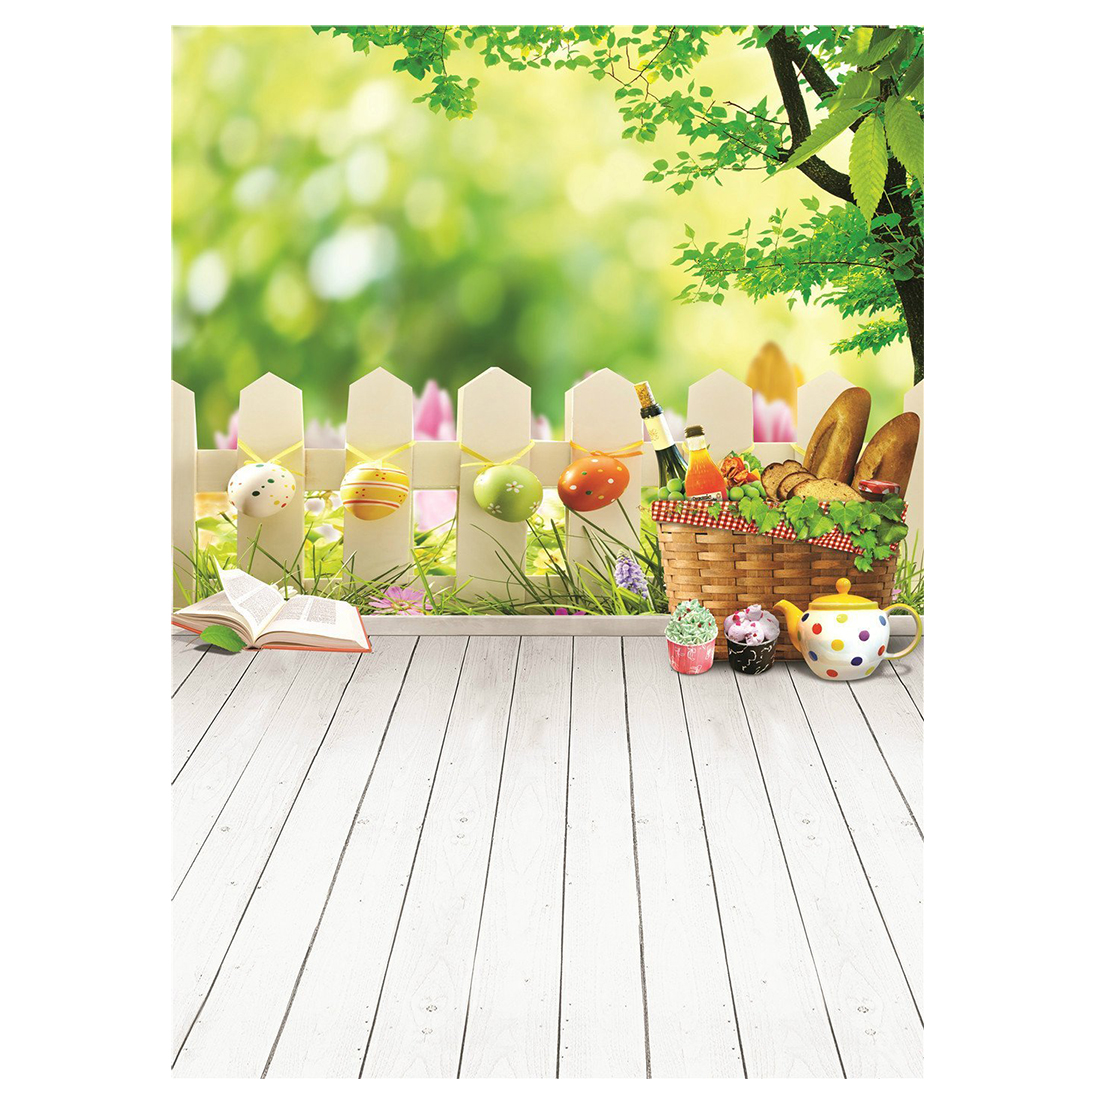 3x5ft (90x150cm) Easter Photo Studio Background Basket Colorful Eggs Photography Backdrop Wood Floor Photographic Backdrops easter day basket branch bunny photo studio background easter photography backdrops page 3